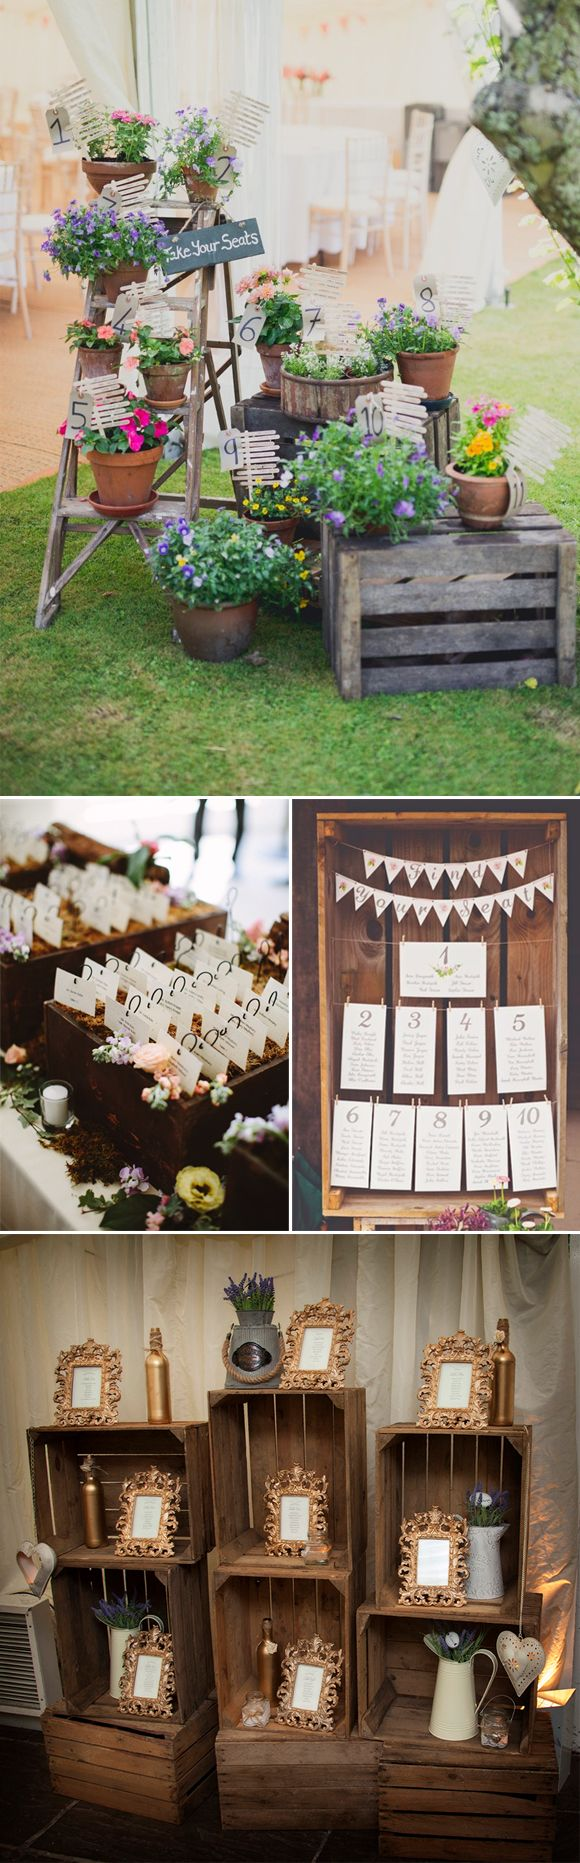 Cajas de madera vintage en tu boda weeding pinterest bodas wedding and rustic chic - Cajas de decoracion ...